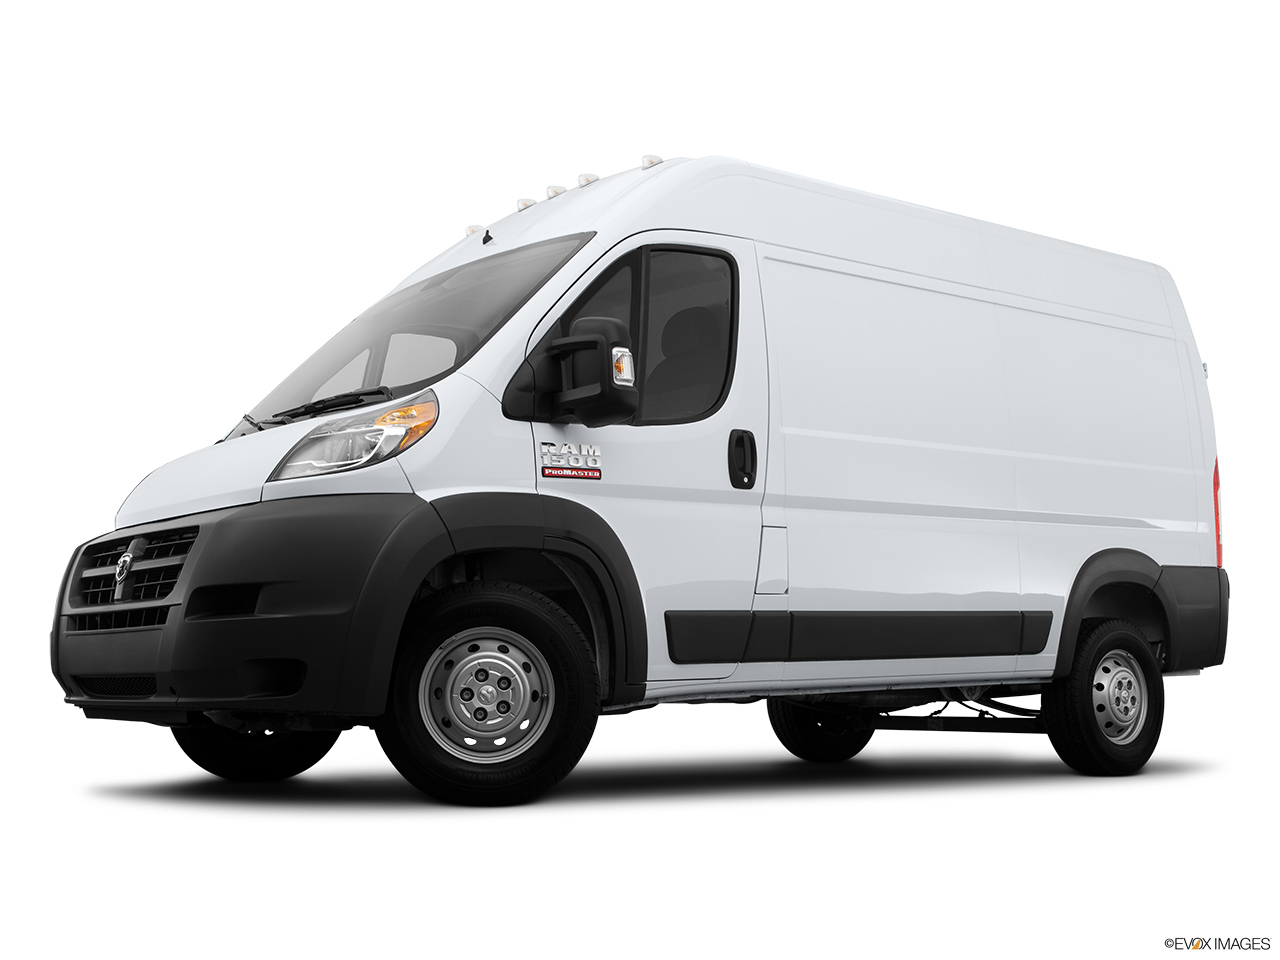 d1be2b00cb 2015 Ram ProMaster 1500 Low Roof 136 WB - Front angle view 2015 ...